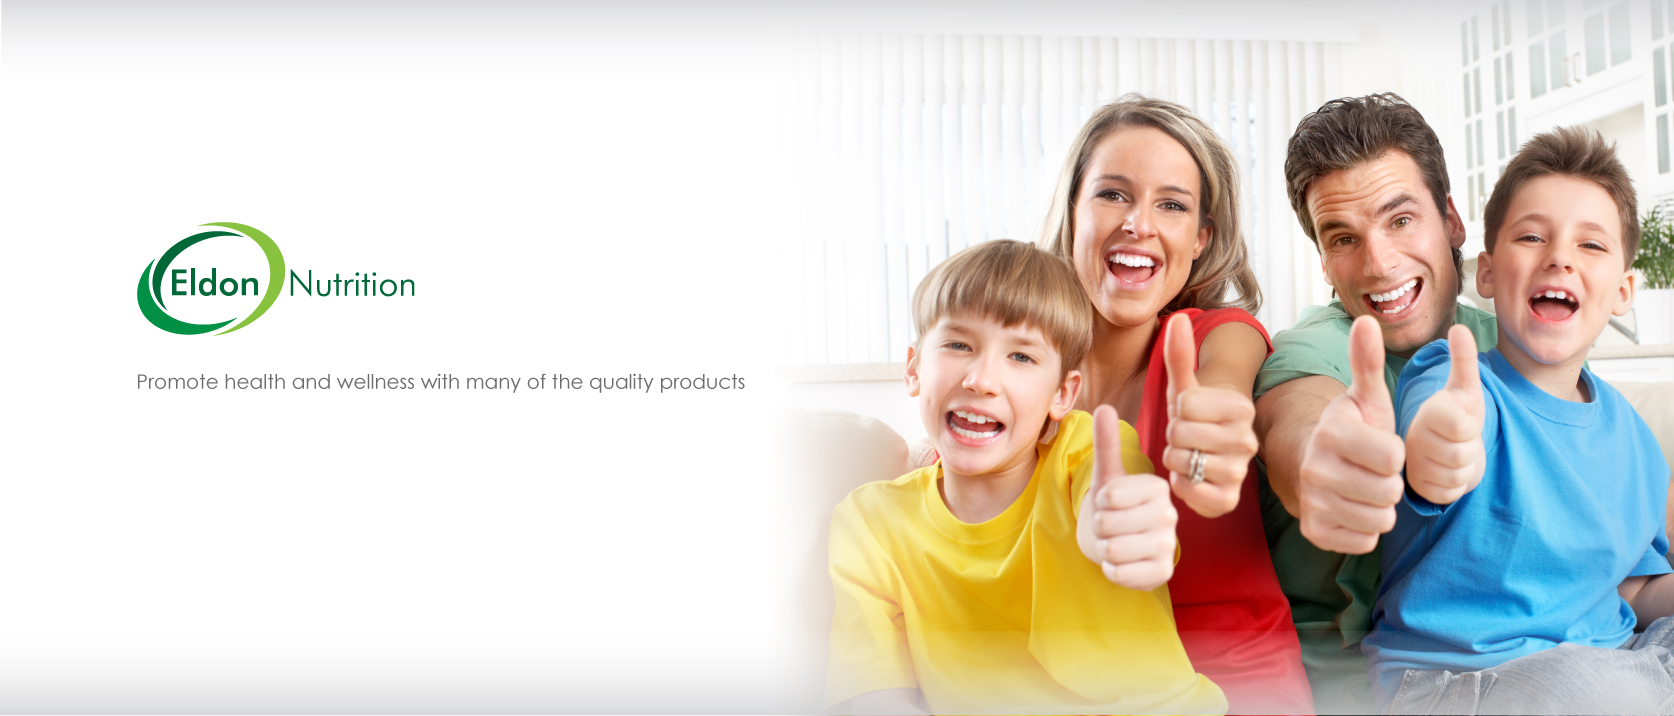 https://www.alivepharmacy.com.my/index.php?route=product/search&search=eldon